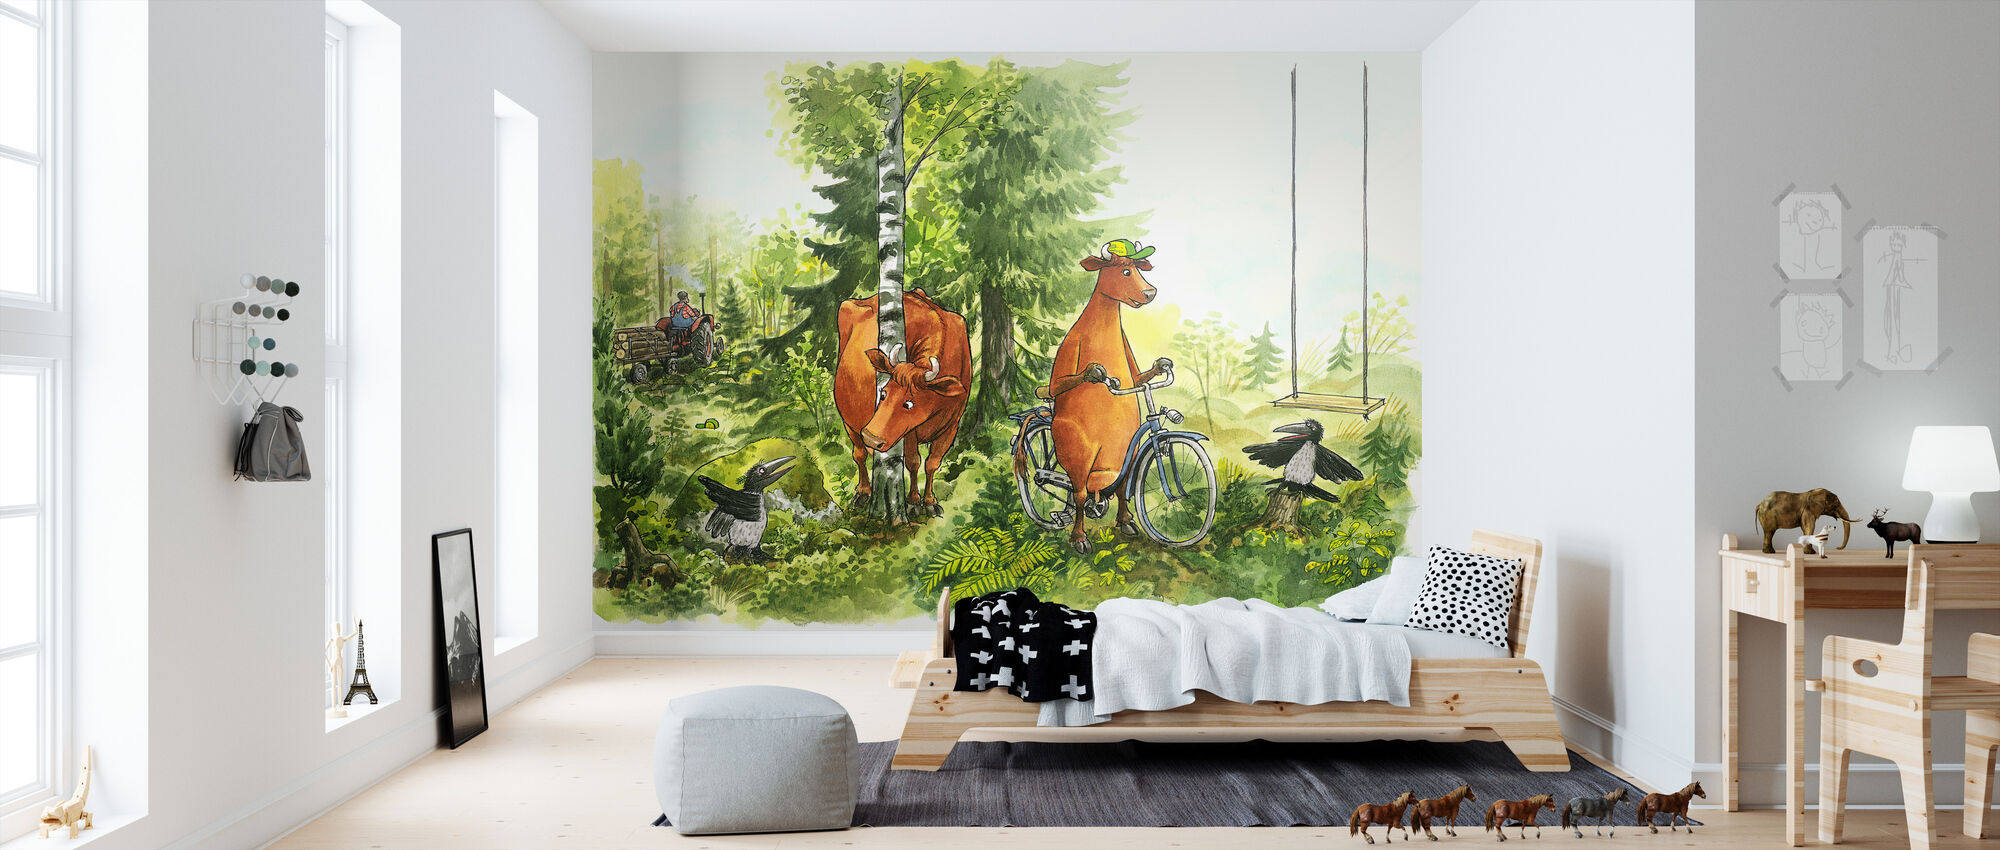 Mom Mu & Crow - What knows a cow - Wallpaper - Kids Room